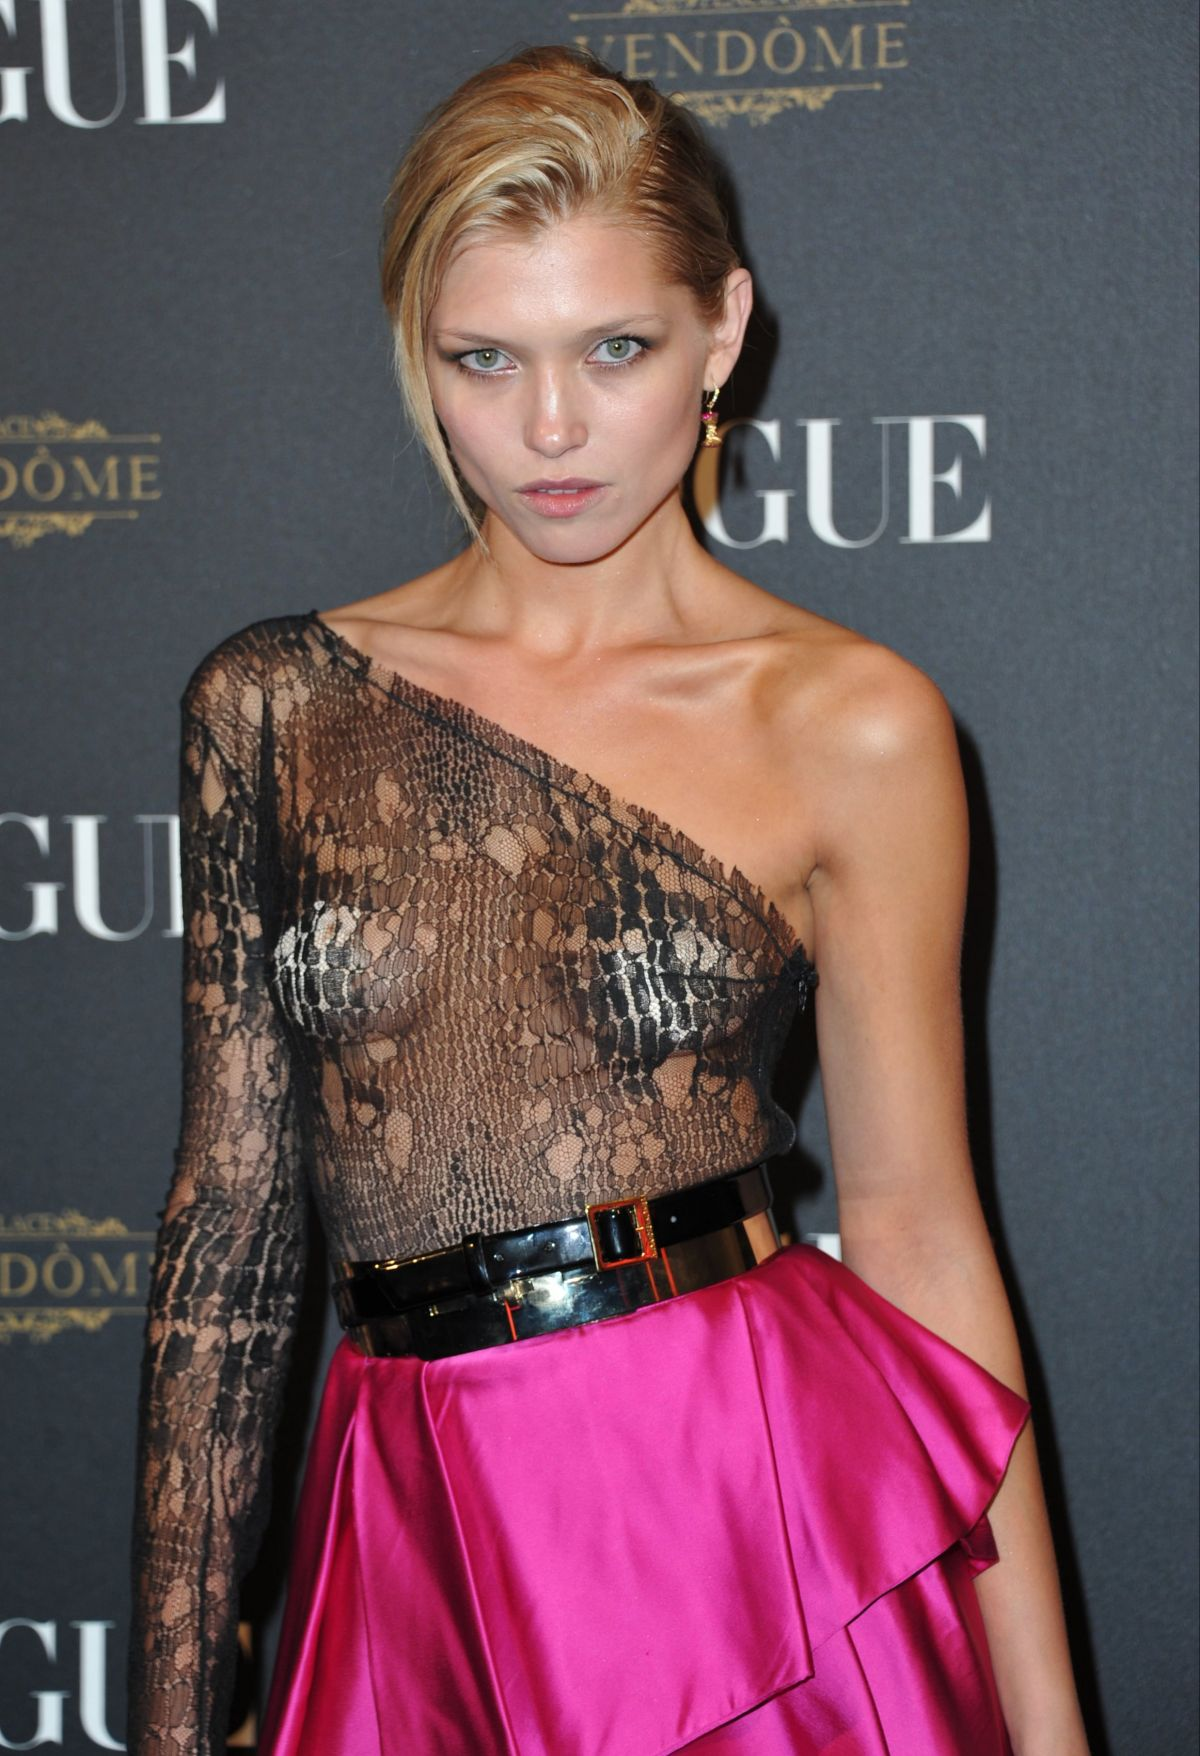 HANA JIRICKOVA at Vogue's 95th Anniversary Party in Paris 10/03/2015